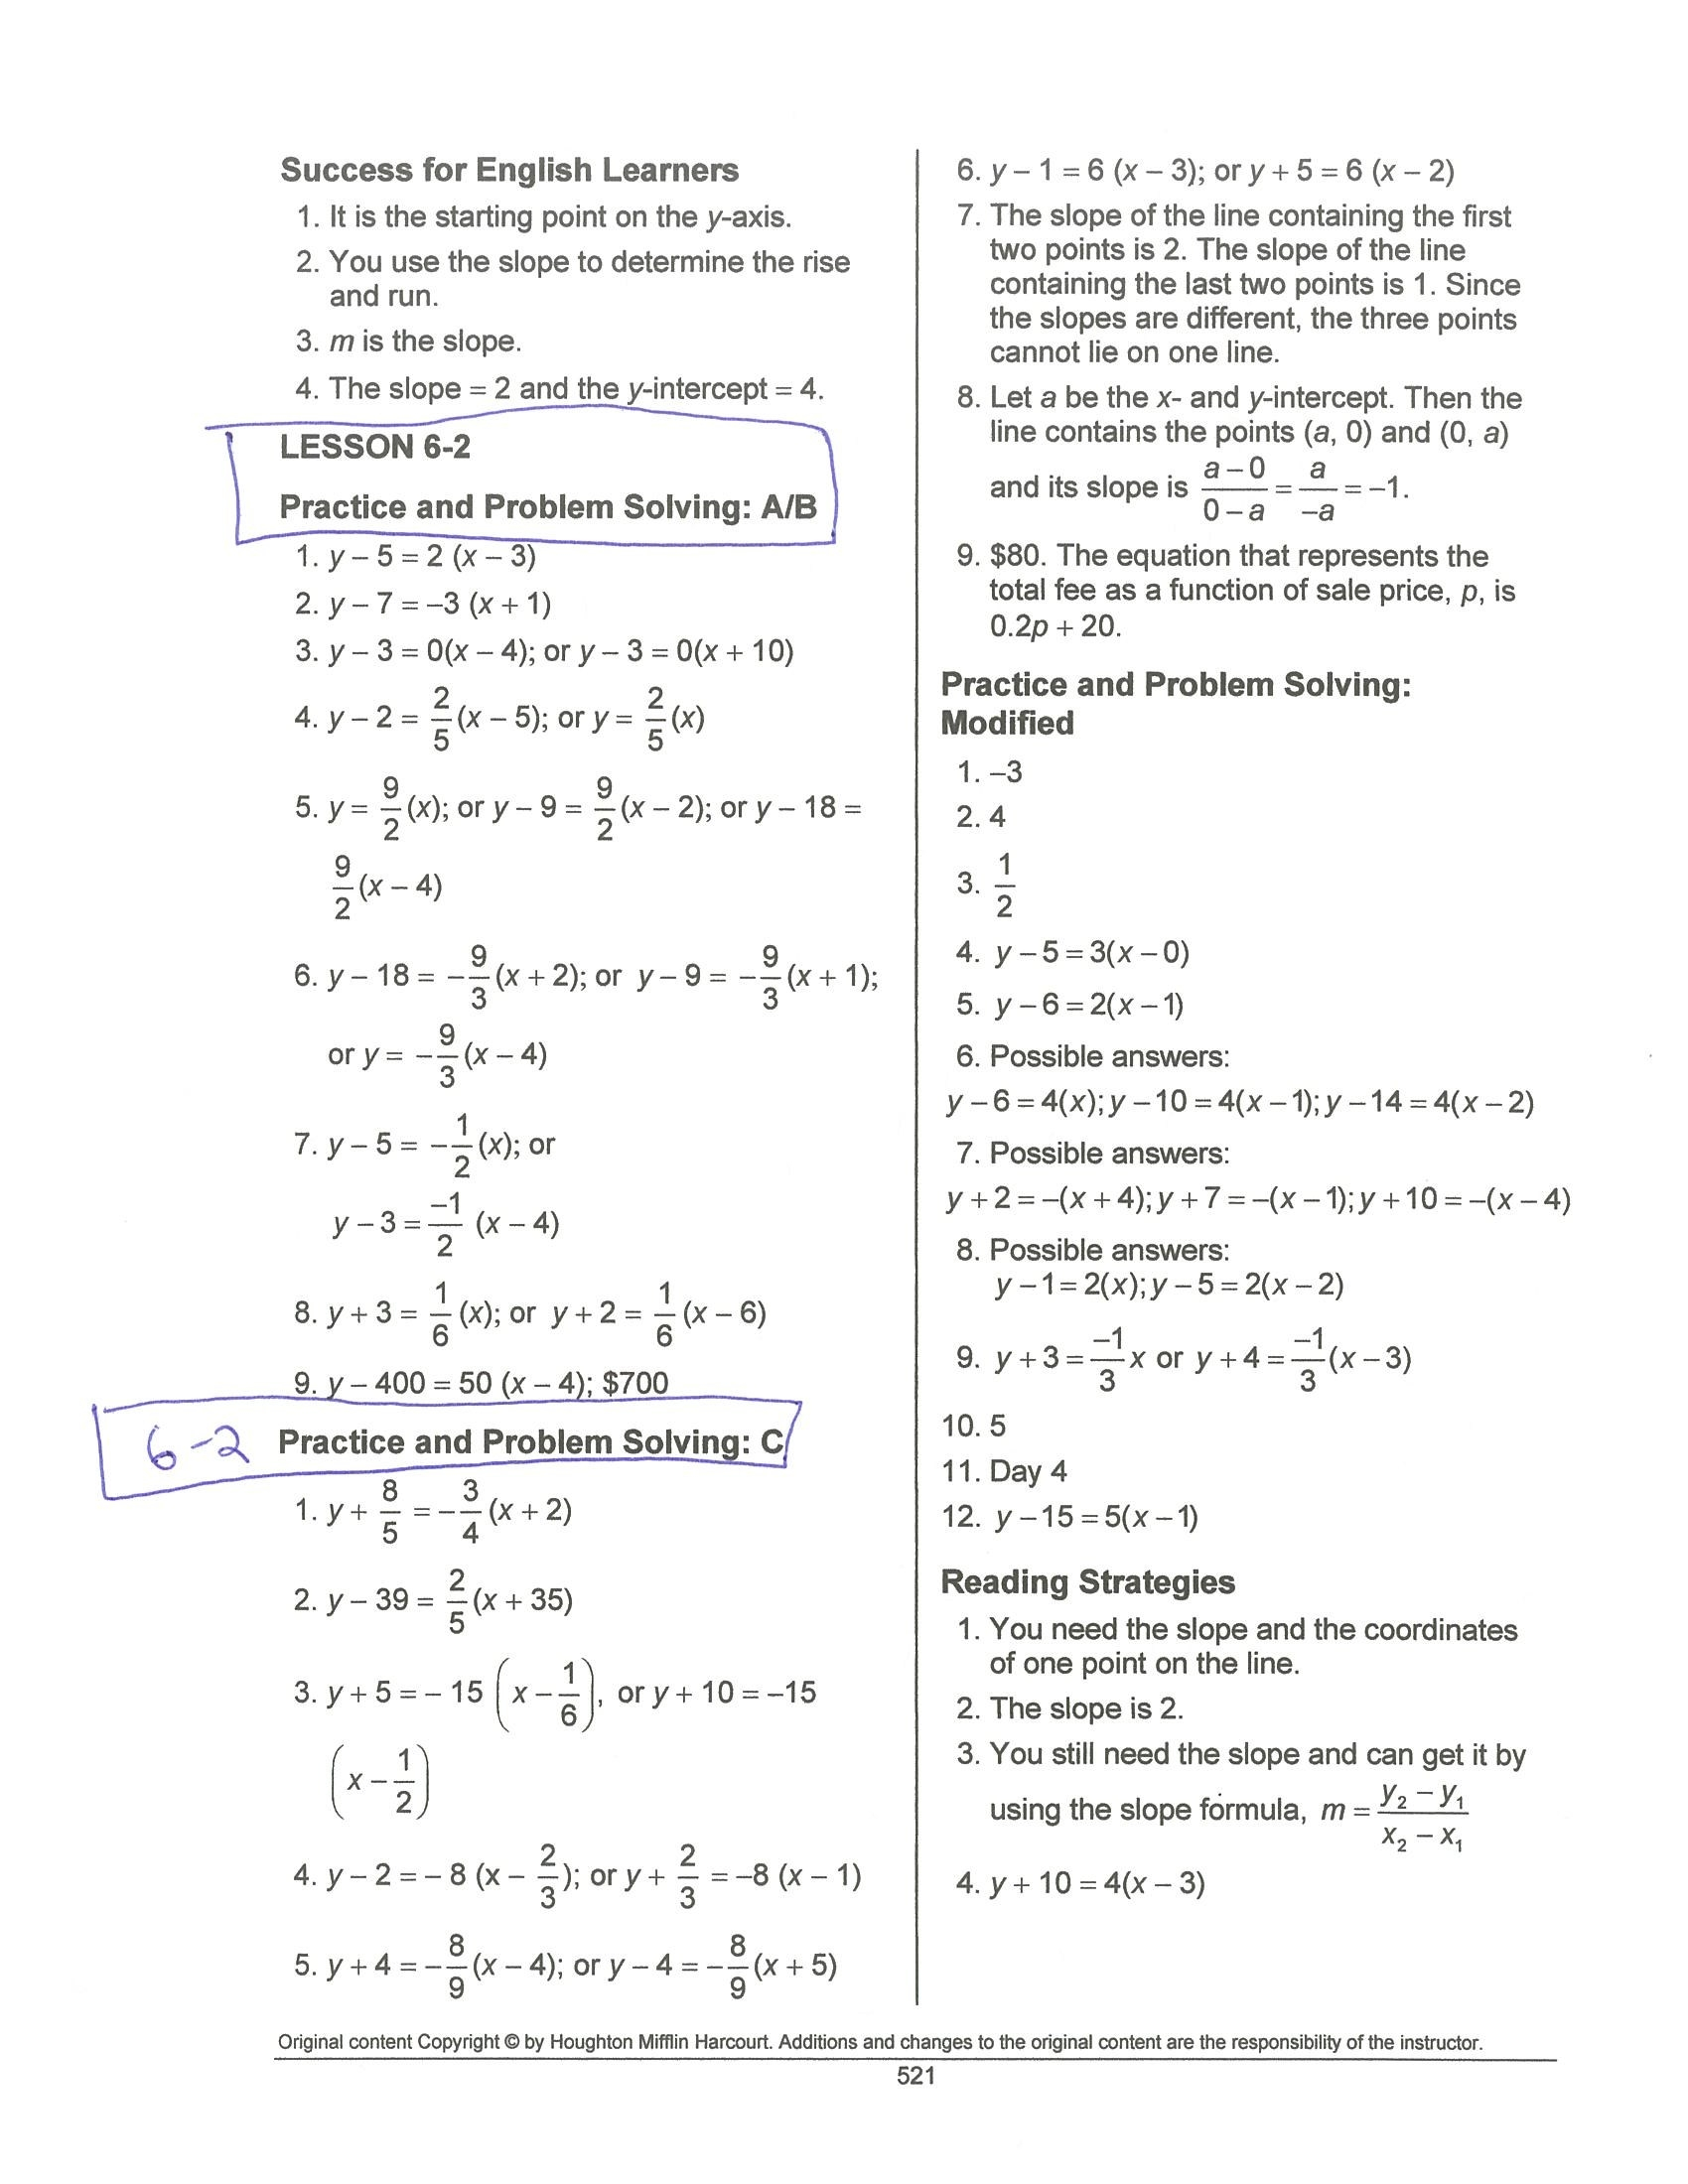 8 Photos Two Way Frequency Tables Practice And Problem